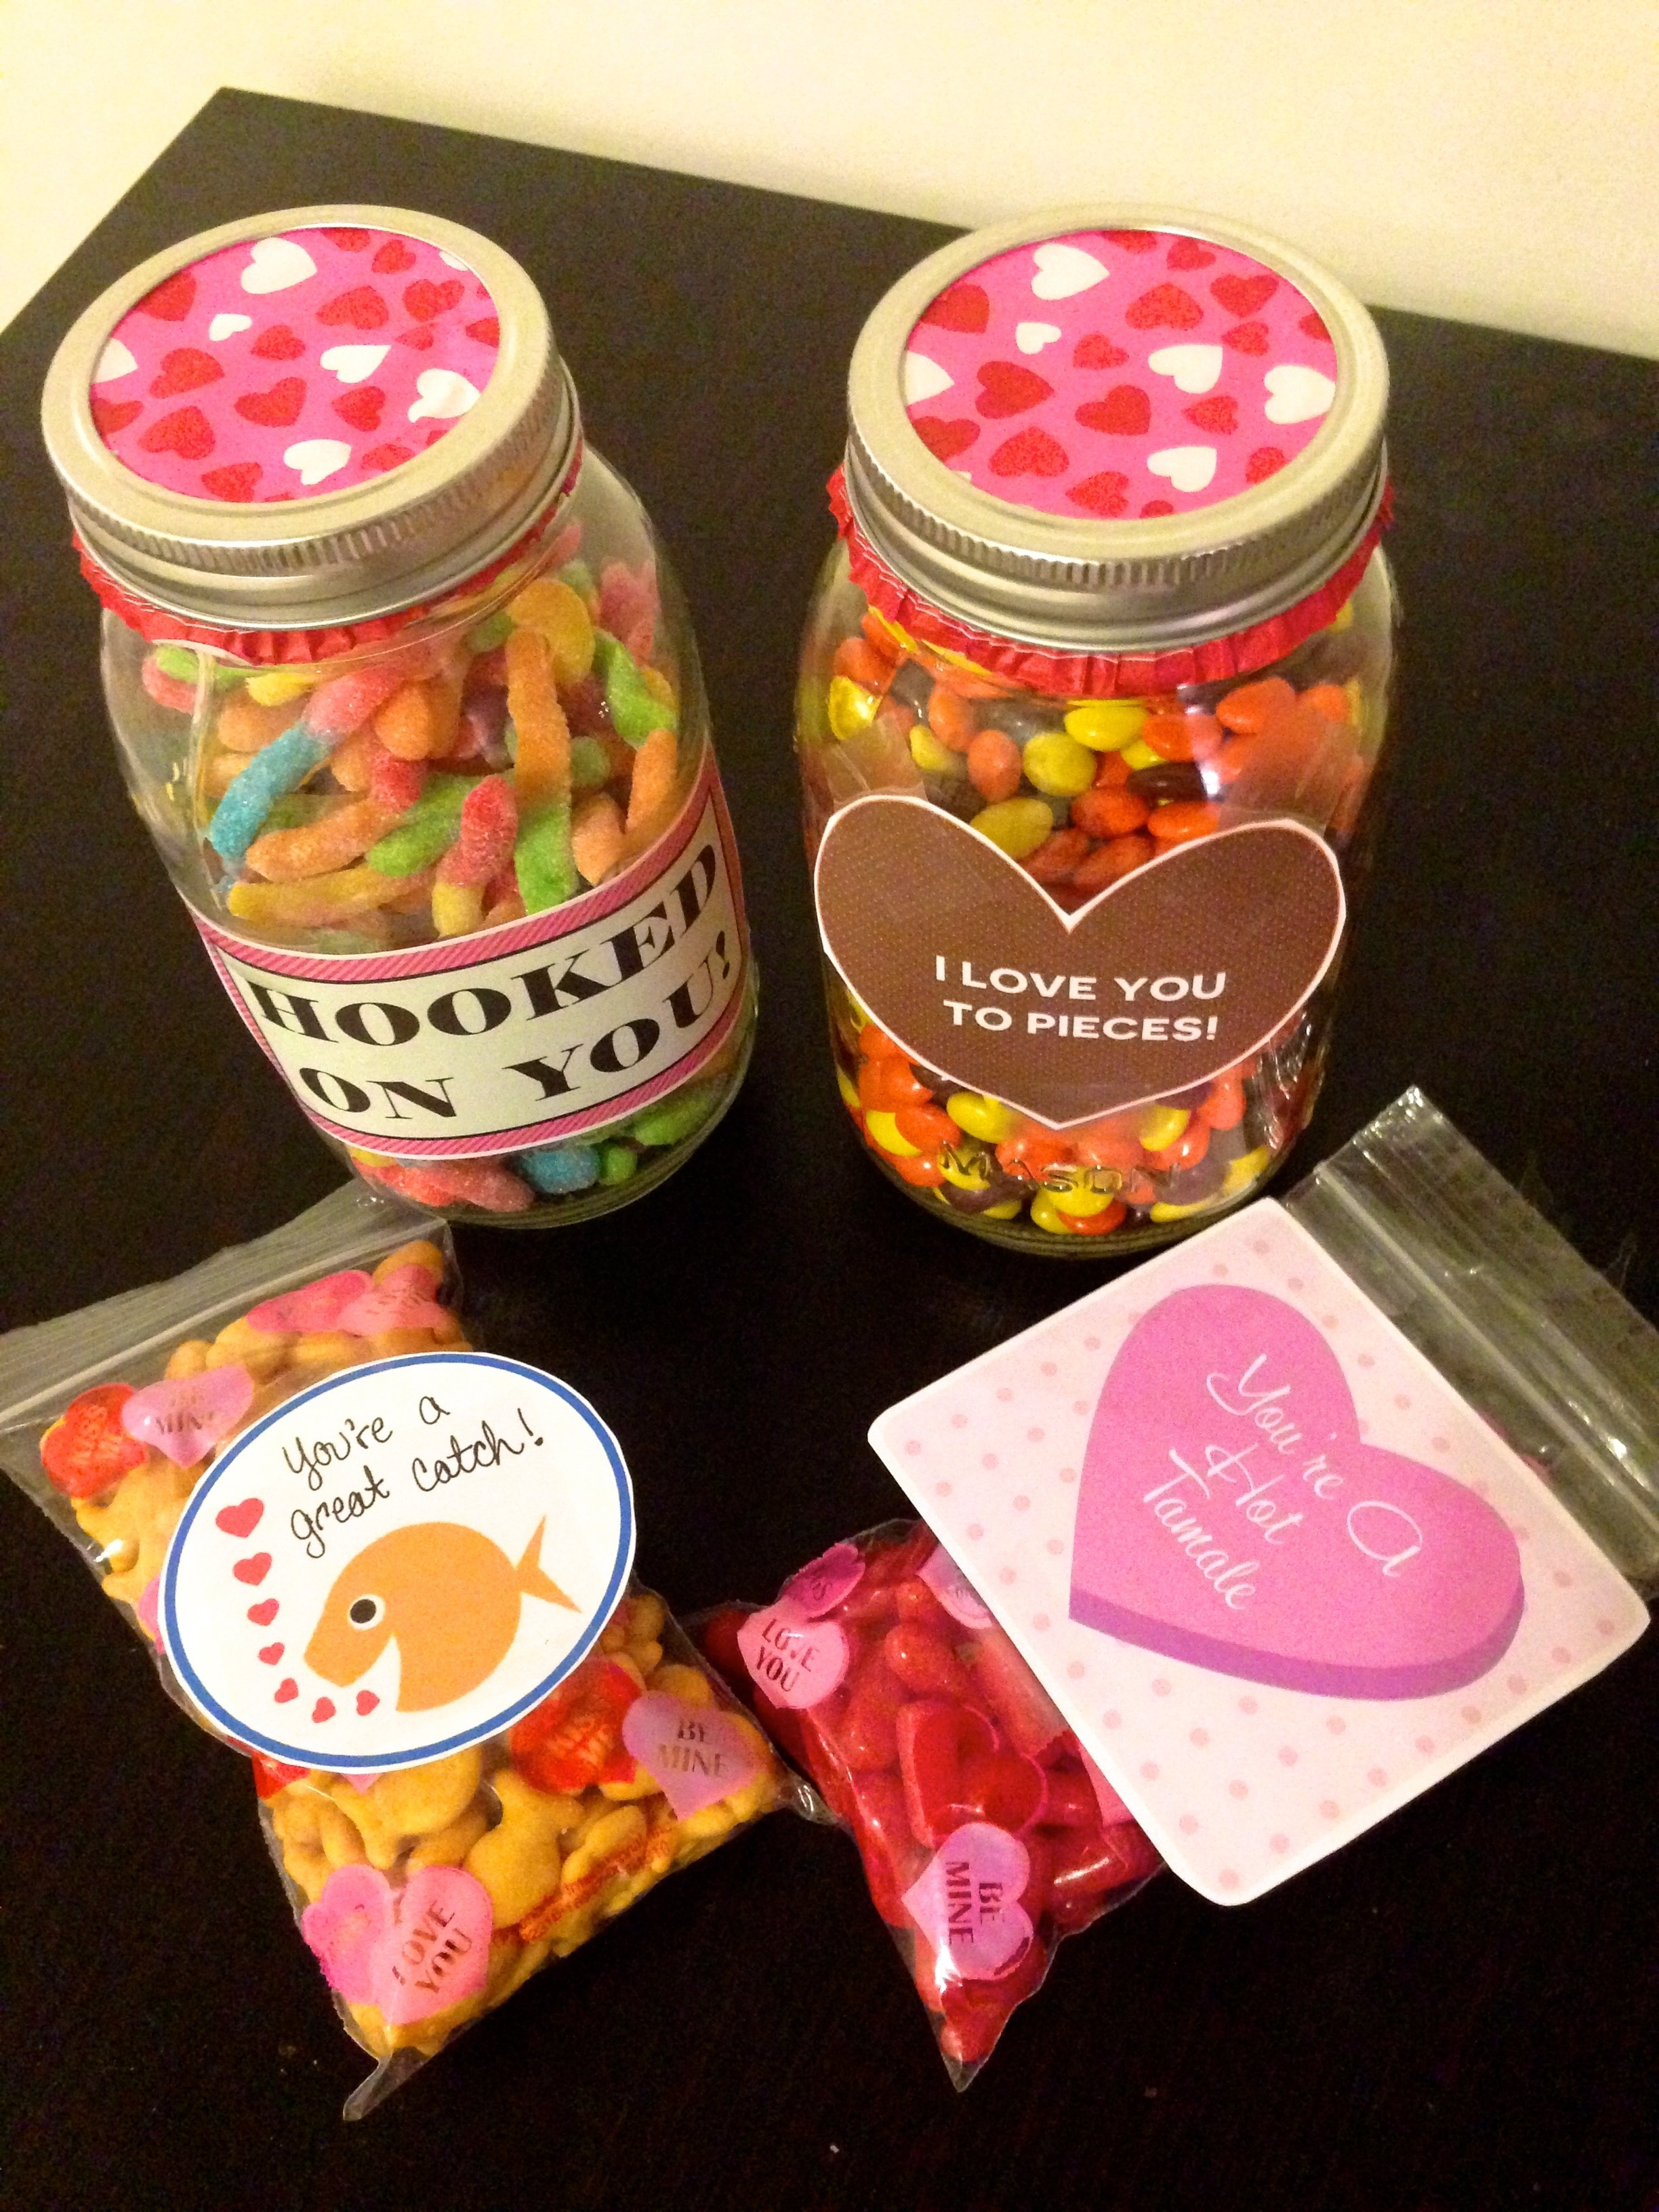 8 diy valentine's day gifts | her campus